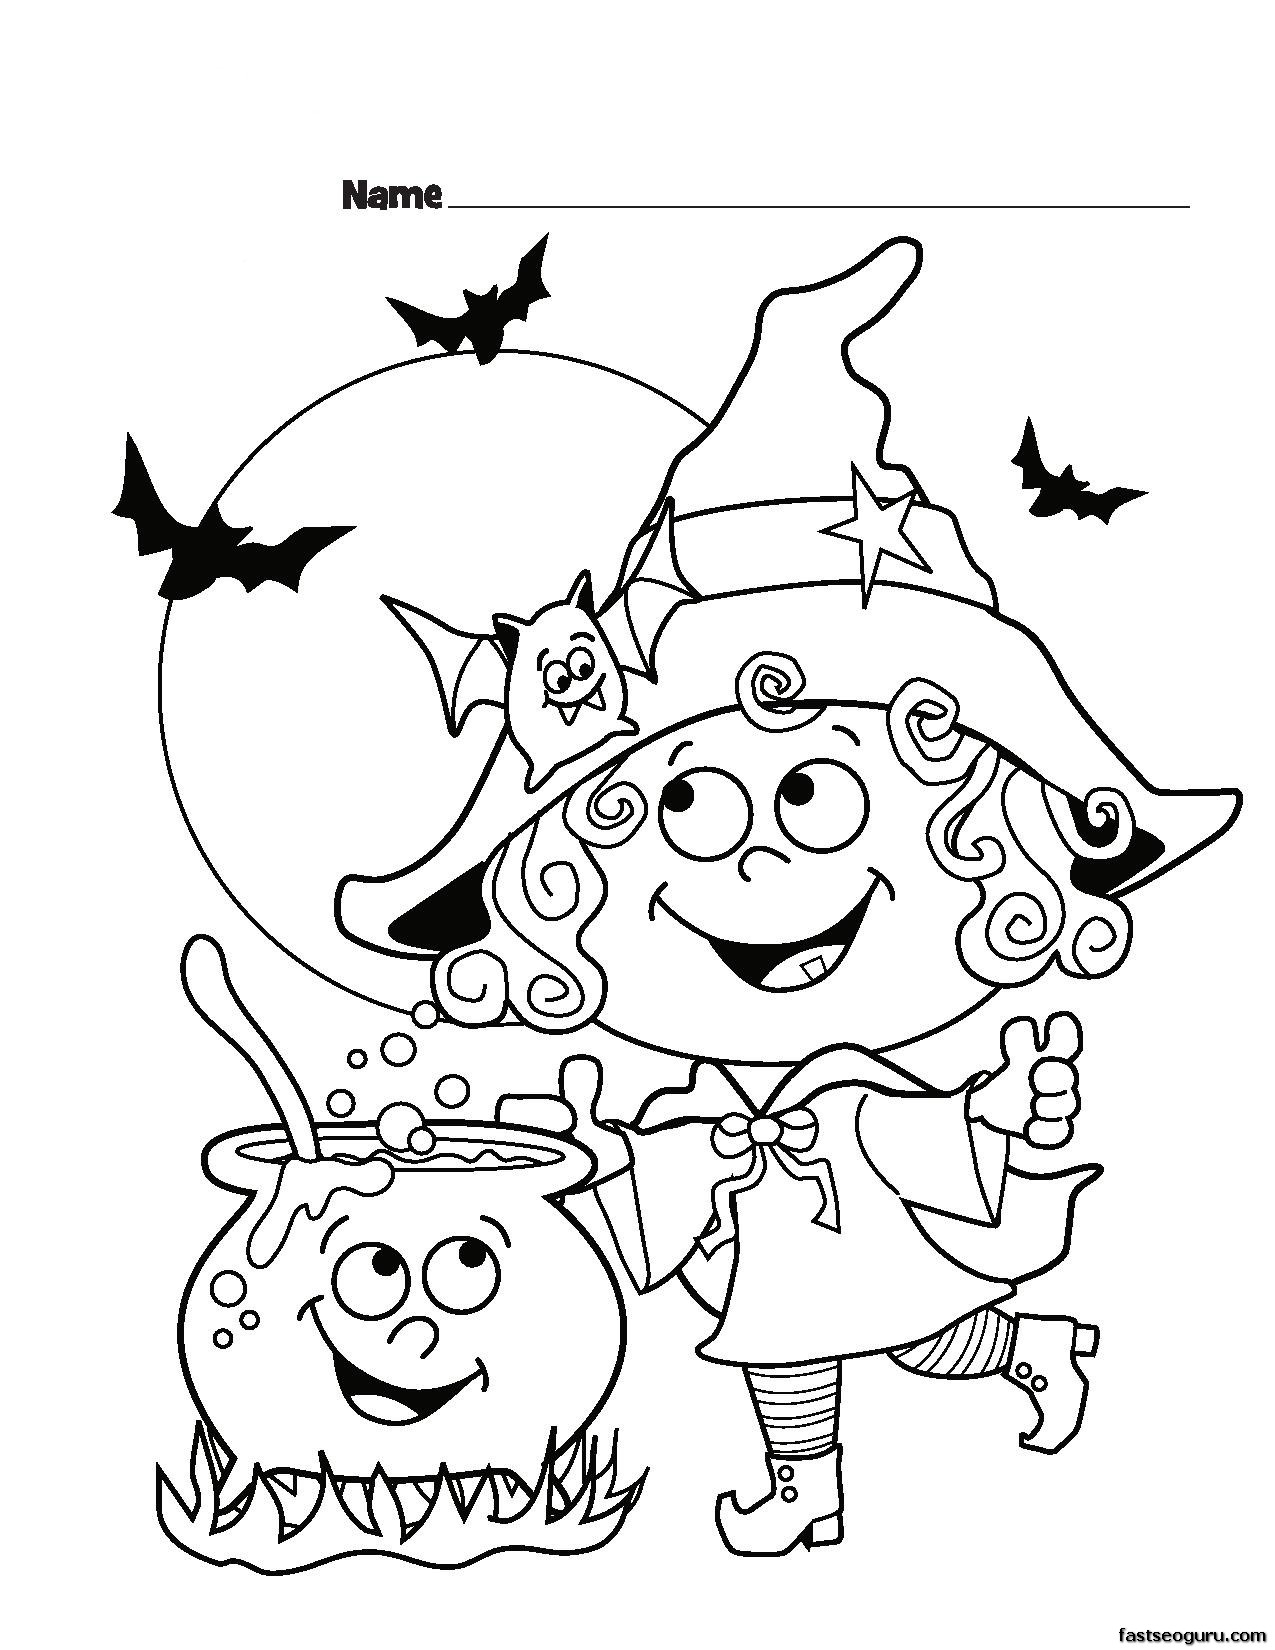 kids printable coloring pages halloween - photo#12